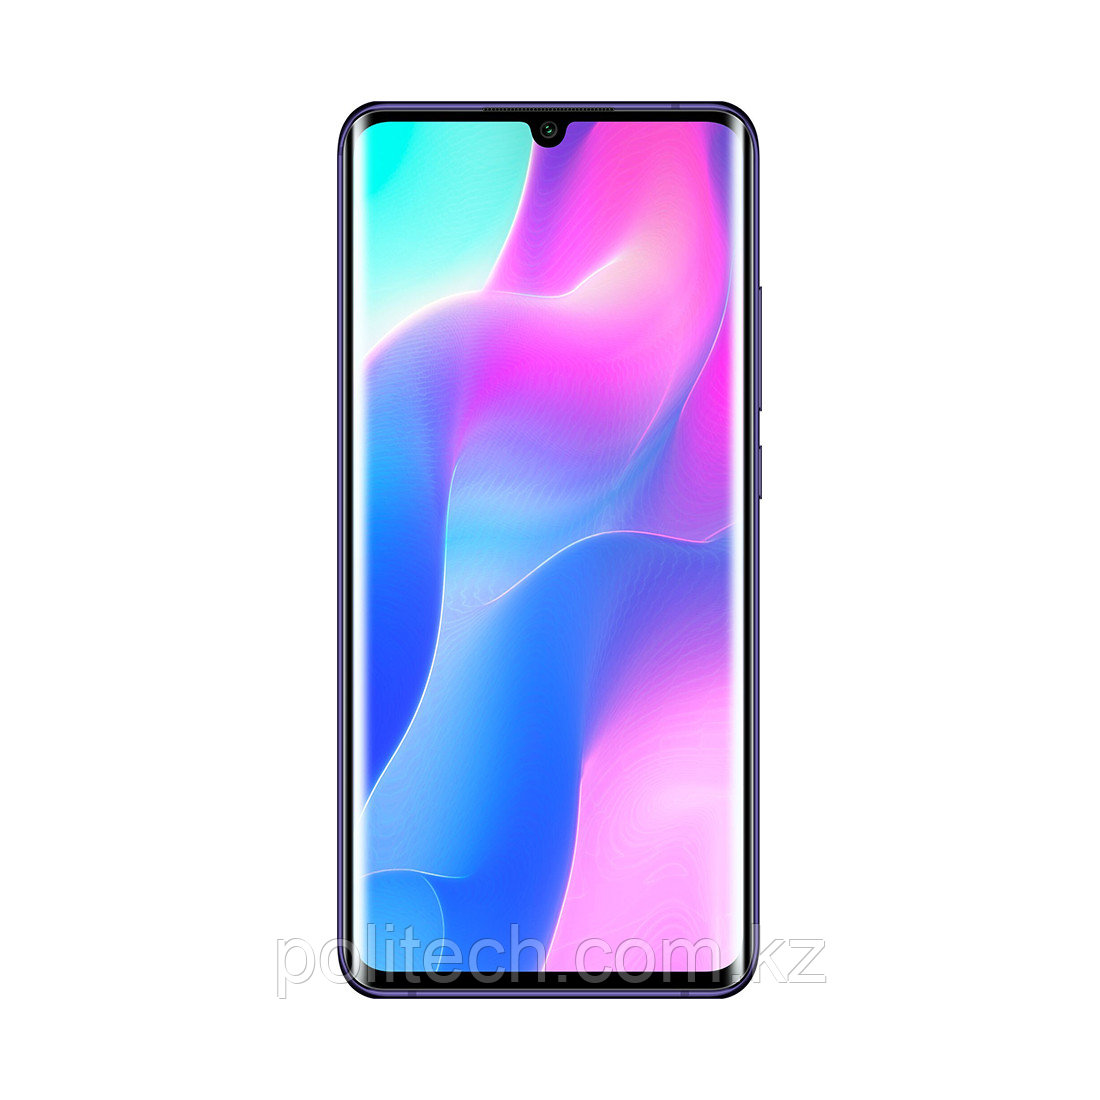 Мобильный телефон Xiaomi Mi Note 10 Lite 128GB Nebula Purple